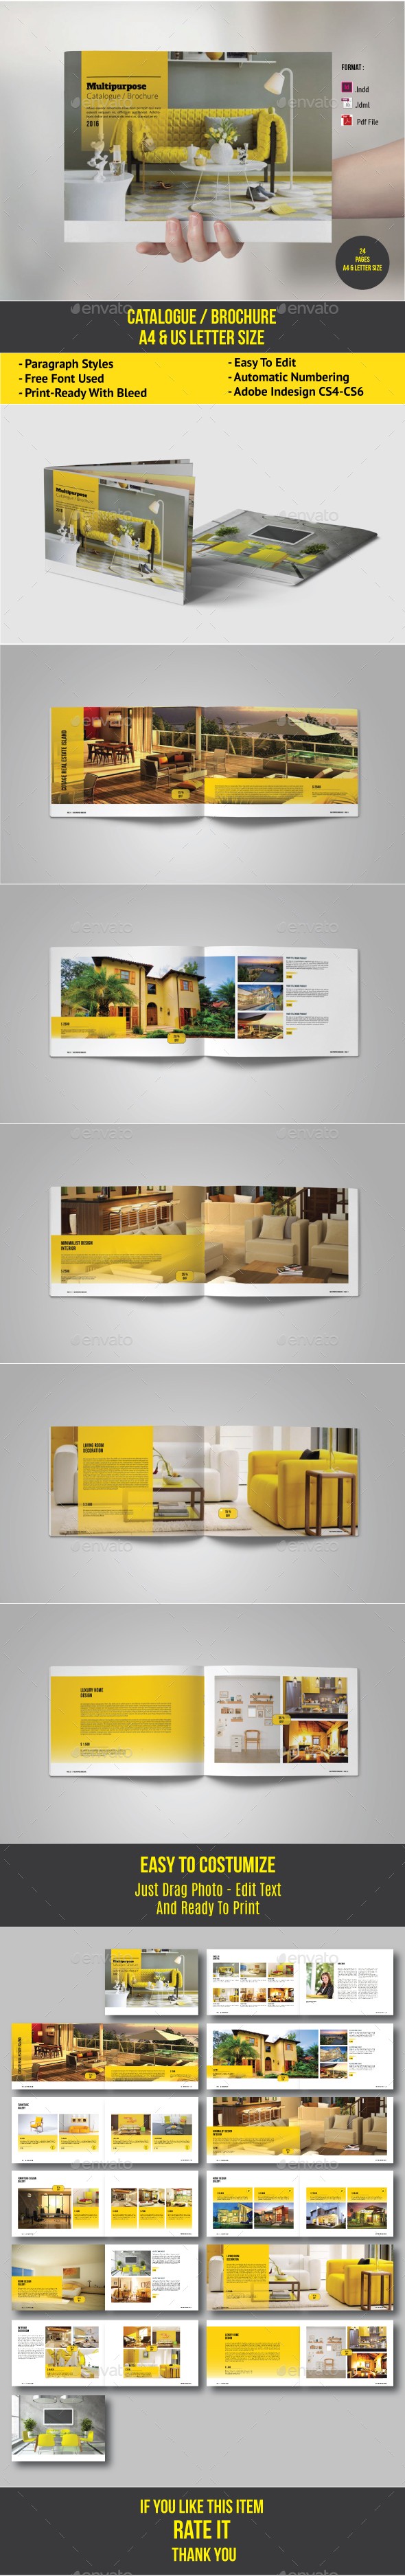 Clean & Modern Catalogue - Catalogs Brochures